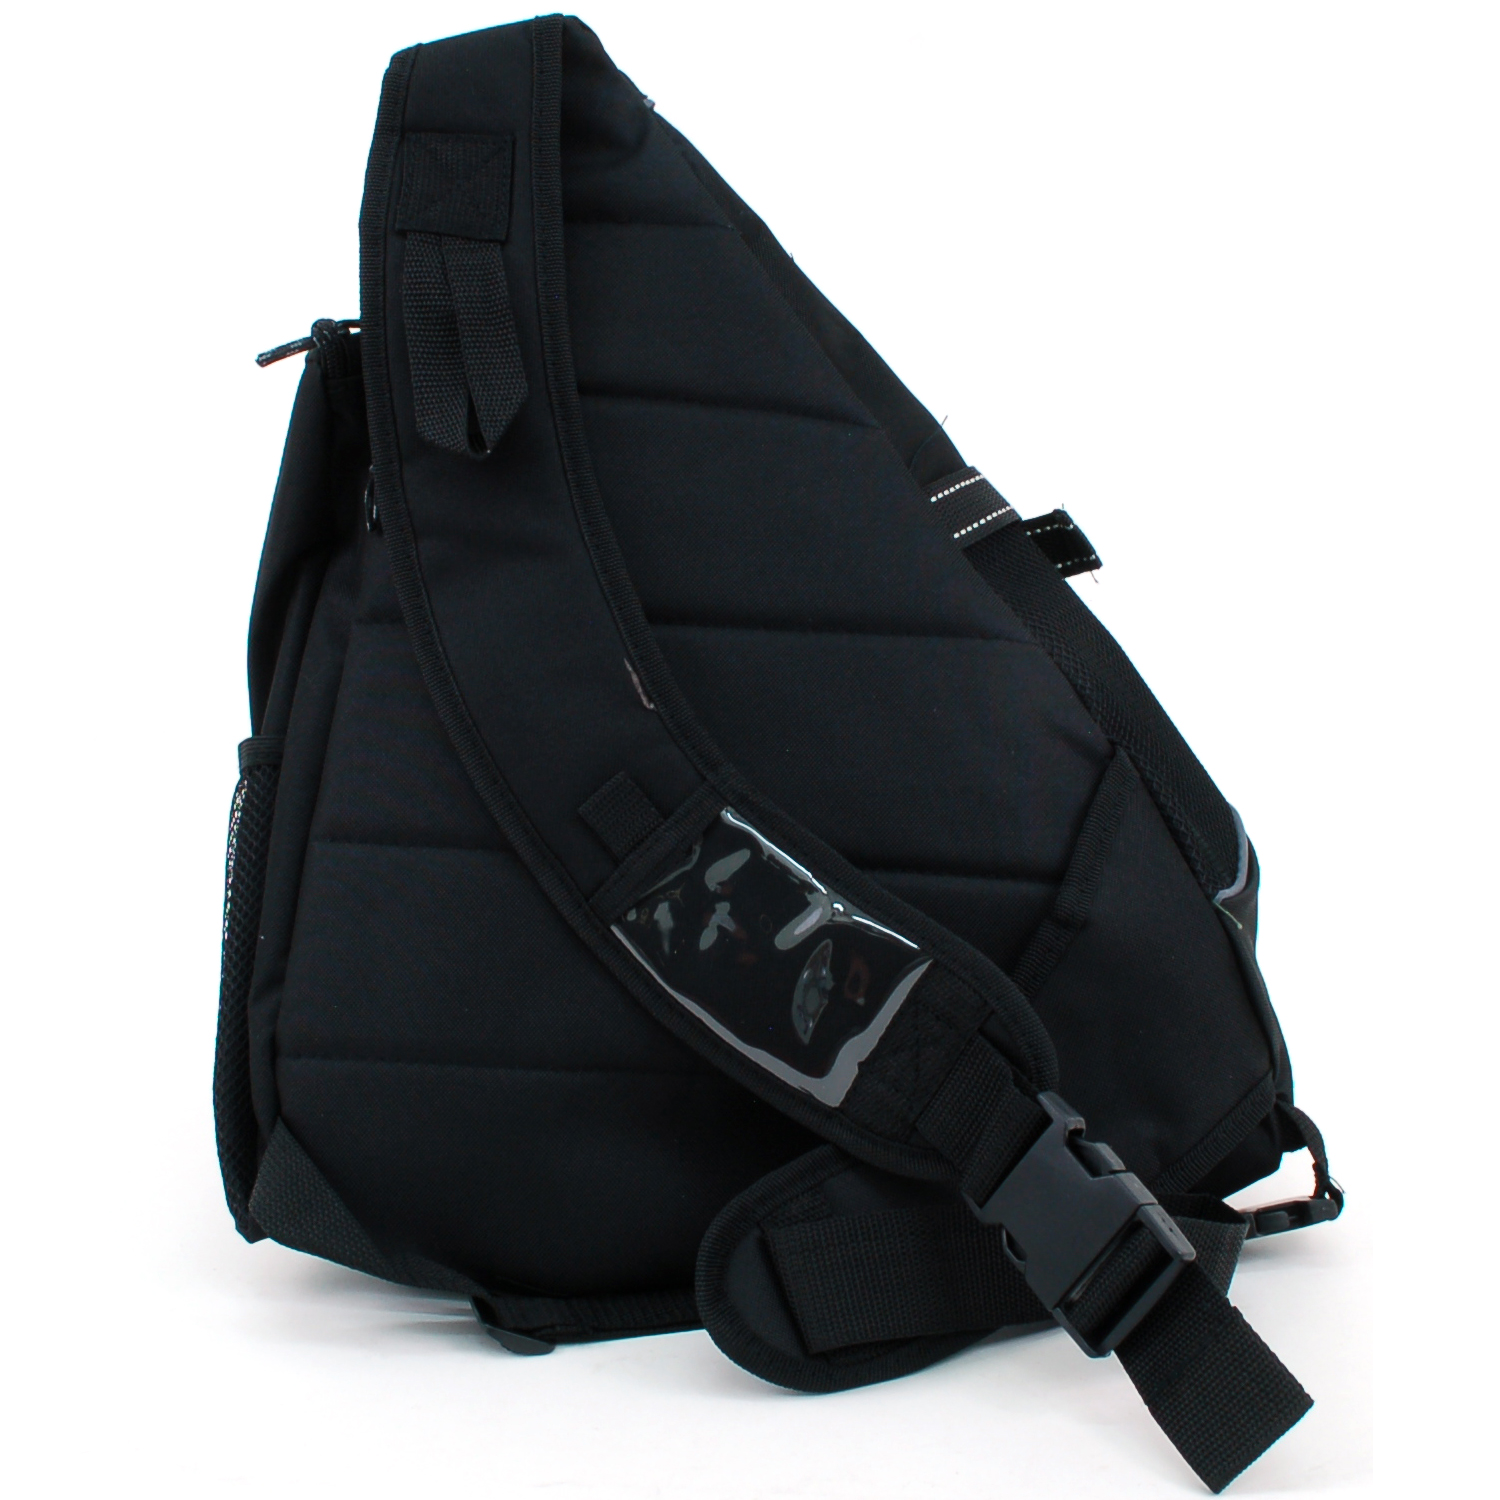 Backpack dating site